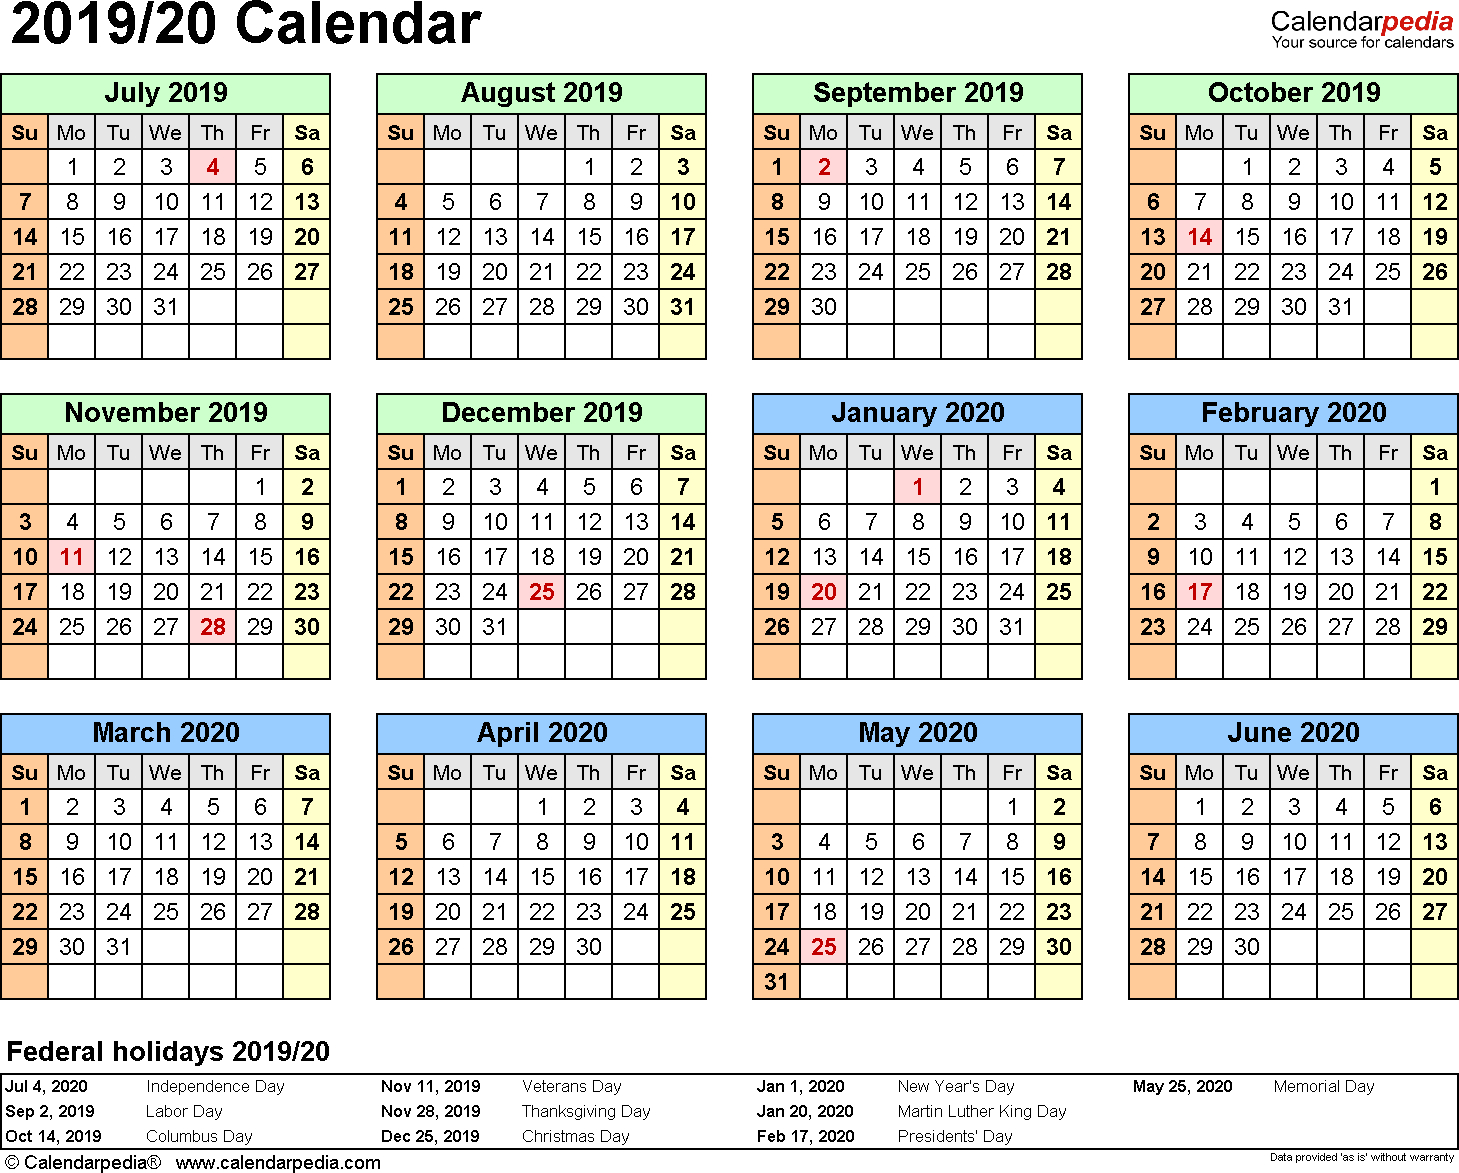 Split Year Calendar 2019/20 (July To June) - Word Templates in Free Year At A Glance Calendar 2019 2020